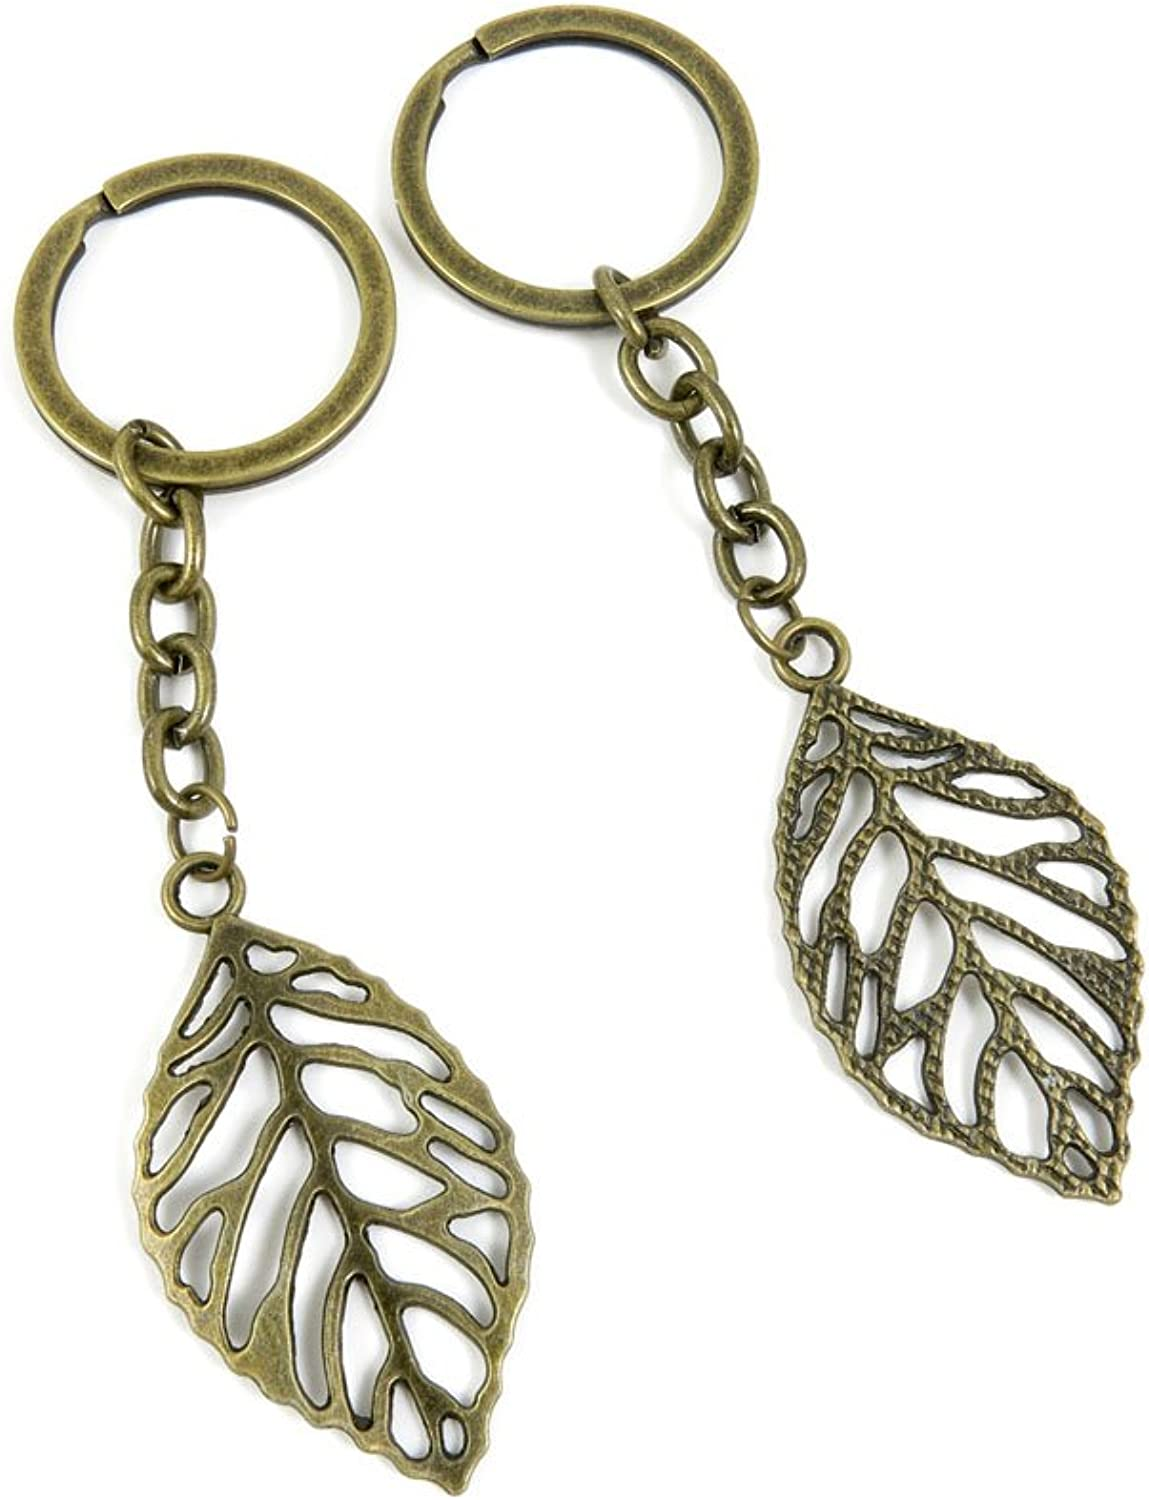 180 Pieces Fashion Jewelry Keyring Keychain Door Car Key Tag Ring Chain Supplier Supply Wholesale Bulk Lots F8WH0 Leaf